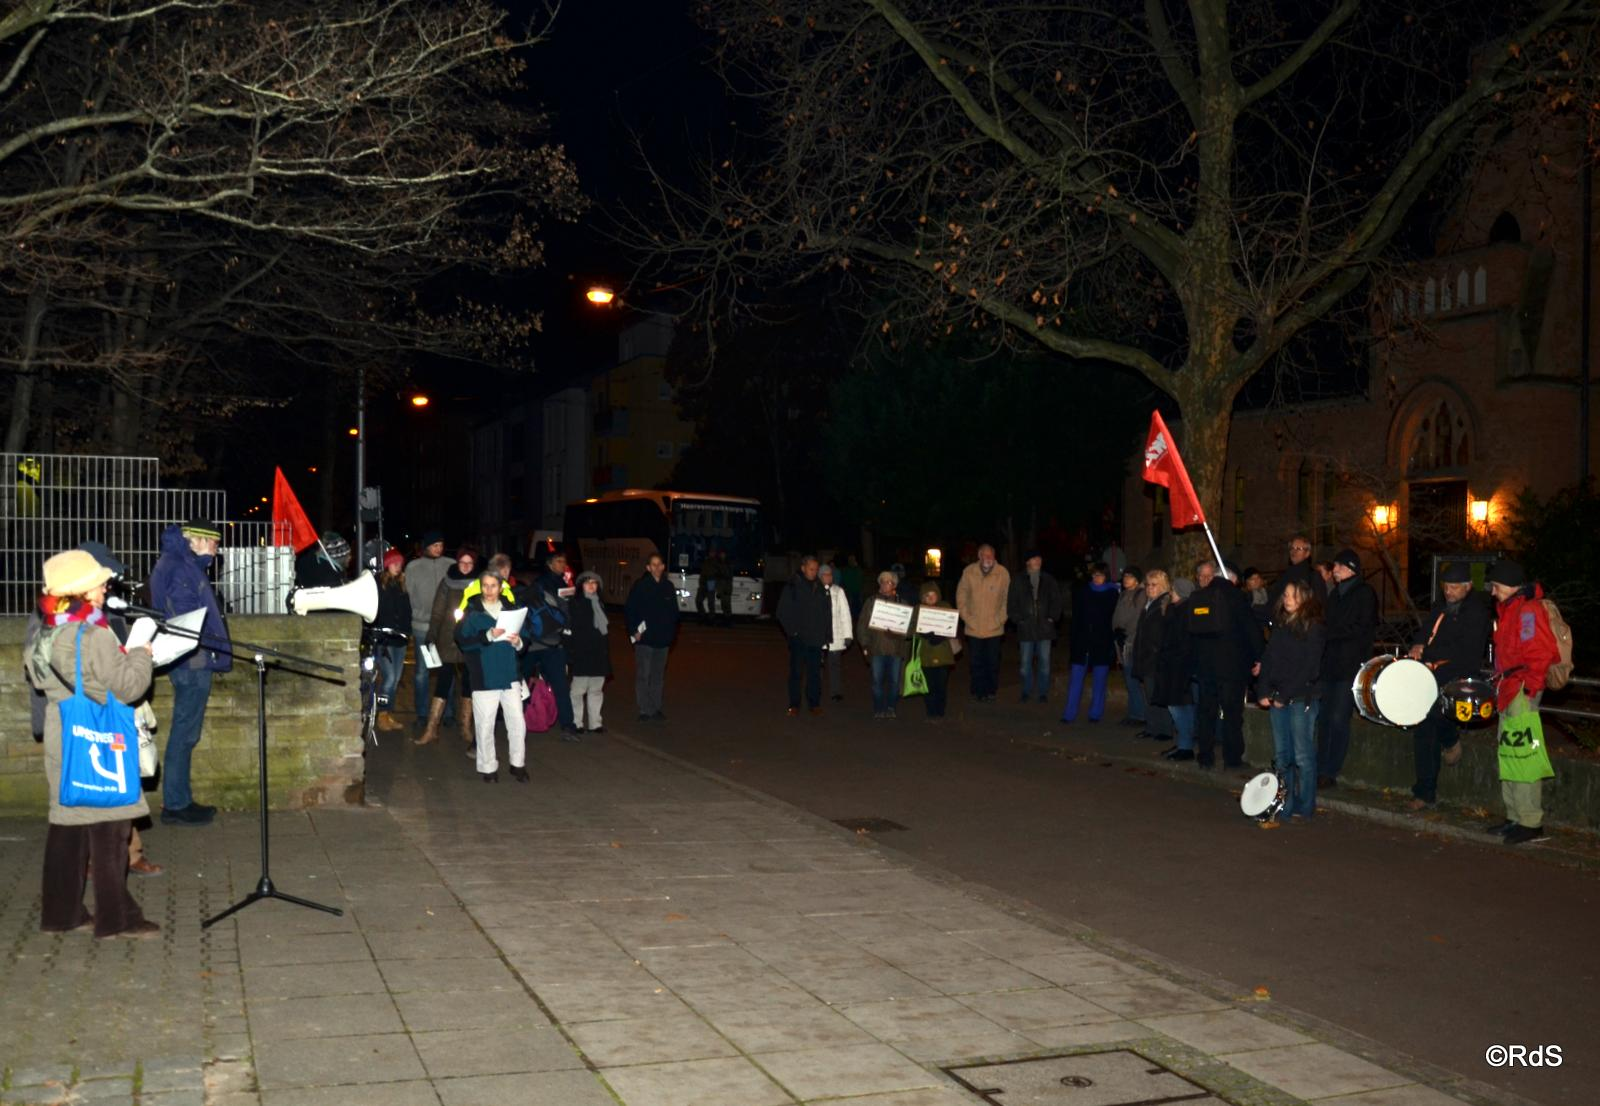 01.12.2016 Wir waren 50 Protestanten (Demonstranten)